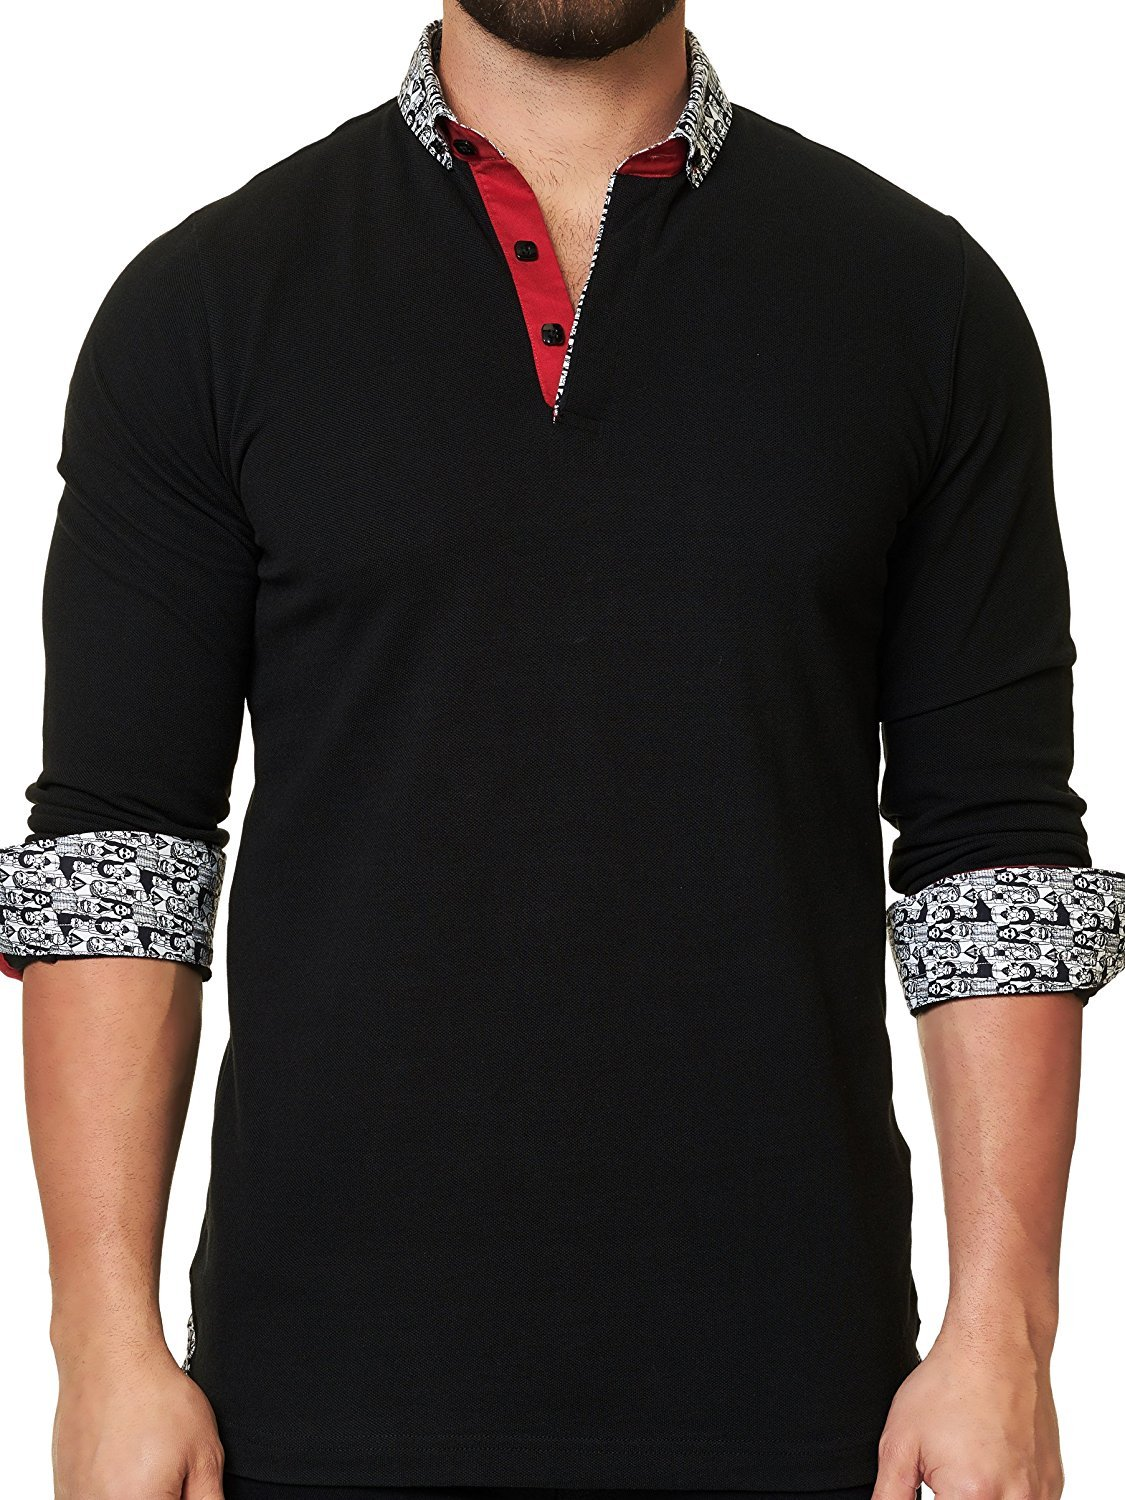 Mens Designer Polo - Stylish & Trendy Sport Shirts - Solid Black - Tailored Fit